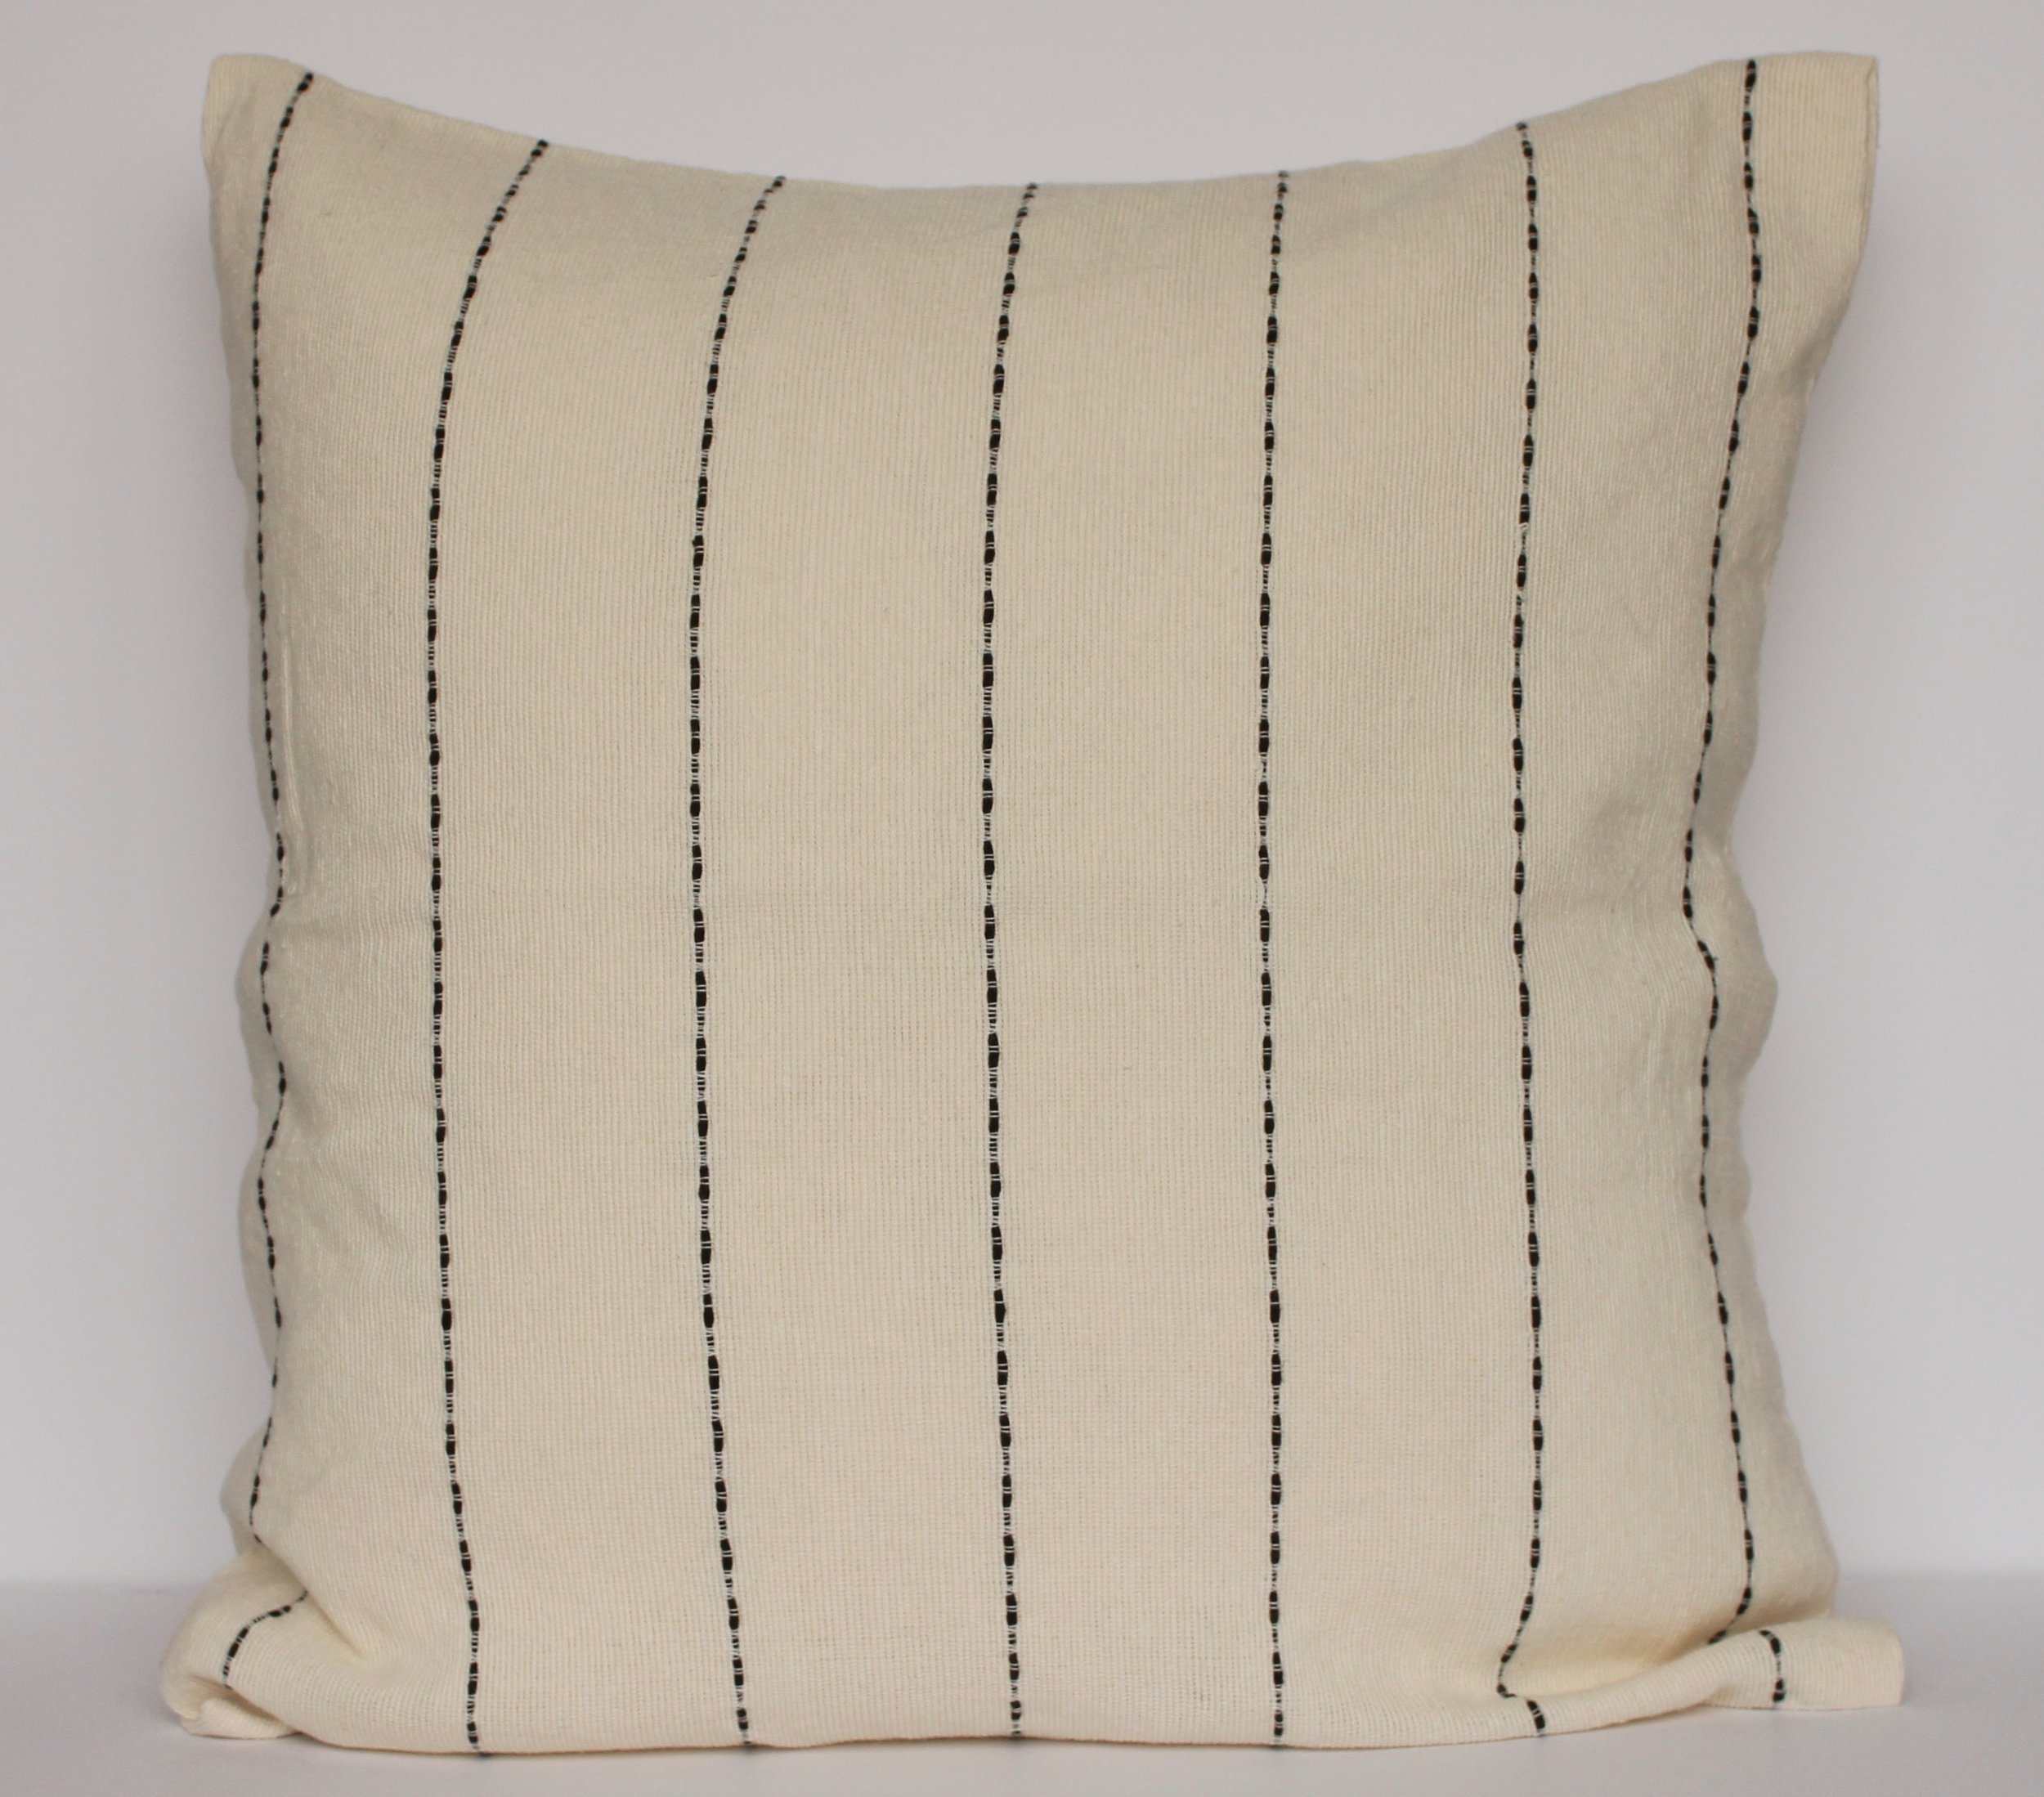 Stacatto patterned cushion